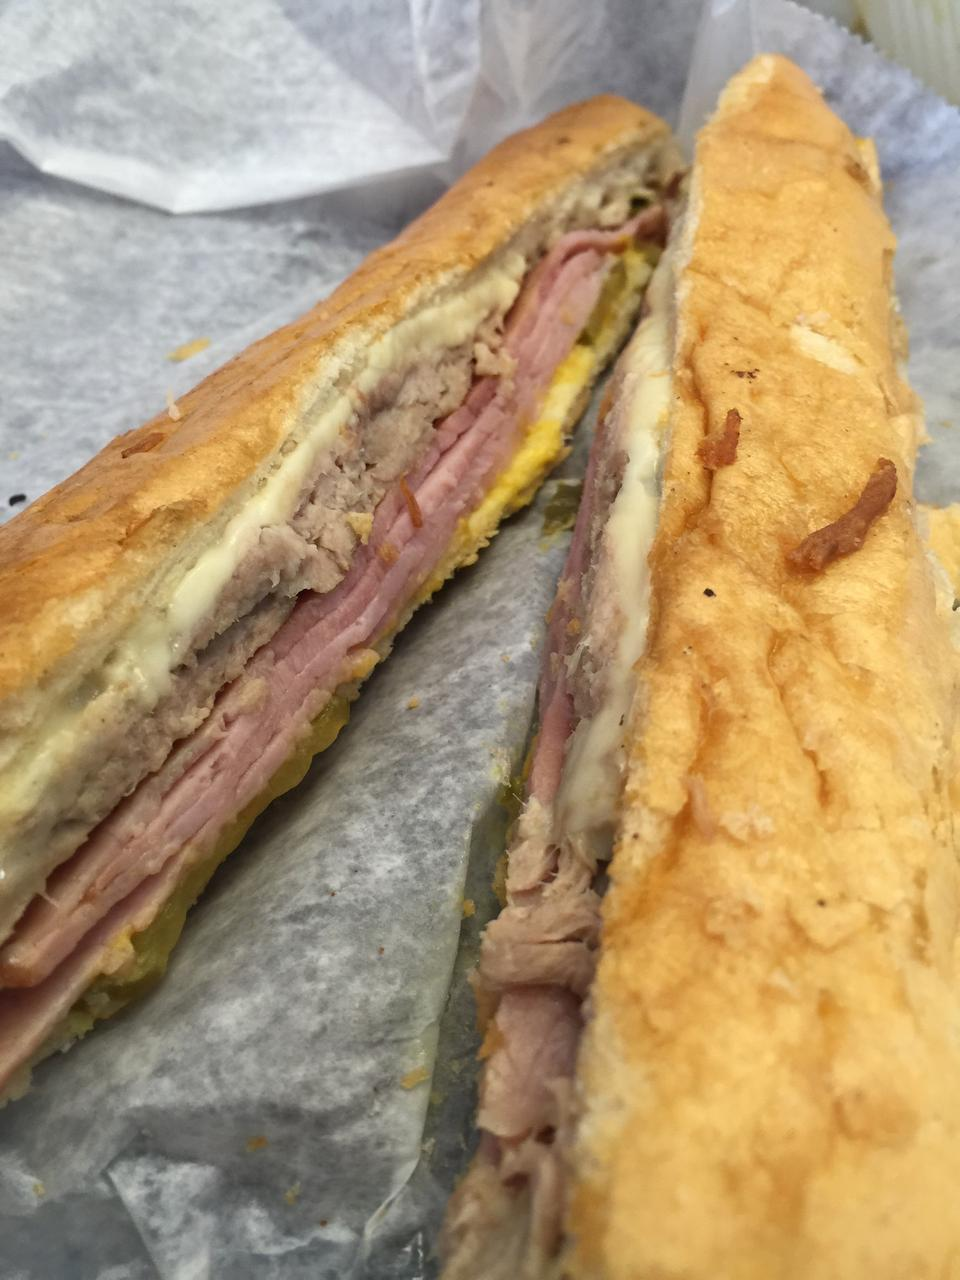 """<p>With 54 tips and reviews. Chris E, writes, """"Cubano sandwich is fantastic. Watch them slather it with butter and throw it on the plancha. Longest 5 minutes of your life."""" <a href=""""https://foursquare.com/v/las-olas-cafe/4a82e943f964a52083f91fe3"""" rel=""""nofollow noopener"""" target=""""_blank"""" data-ylk=""""slk:644 6th St."""" class=""""link rapid-noclick-resp"""">644 6th St.</a></p>"""